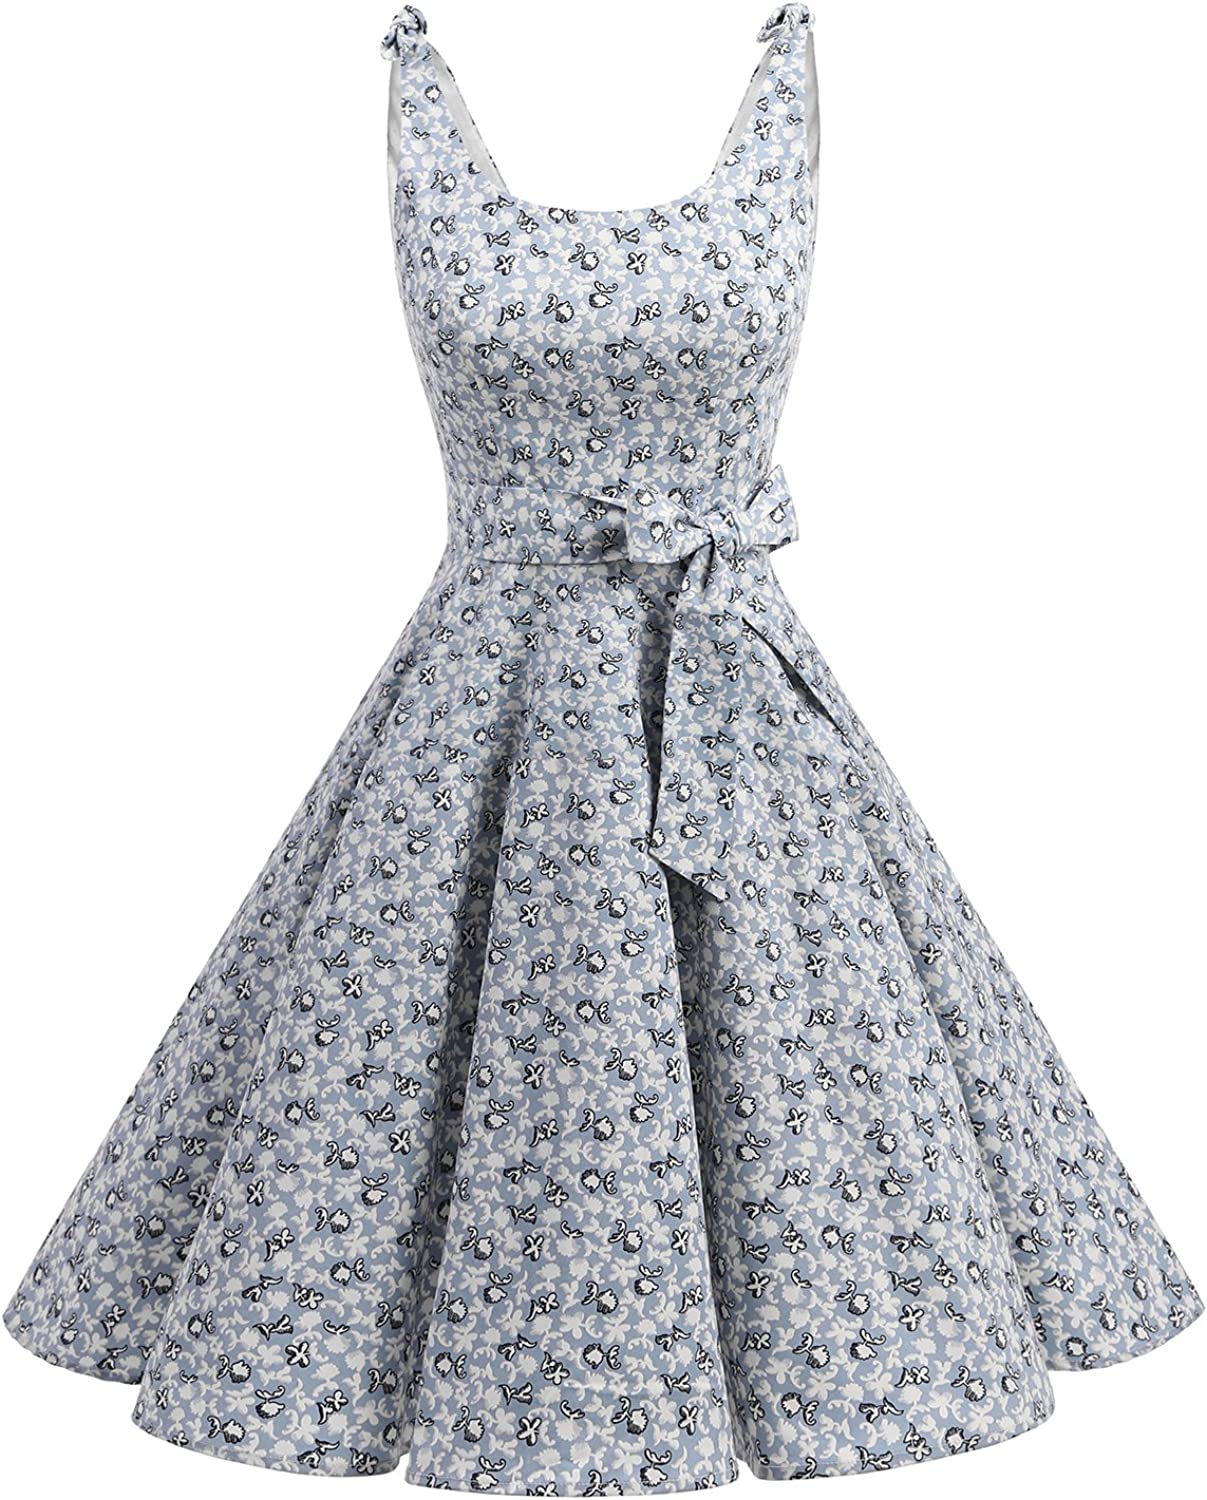 TALLA 3XL. Bbonlinedress Vestidos de 1950 Estampado Vintage Retro Cóctel Rockabilly con Lazo Little Flowers 3XL